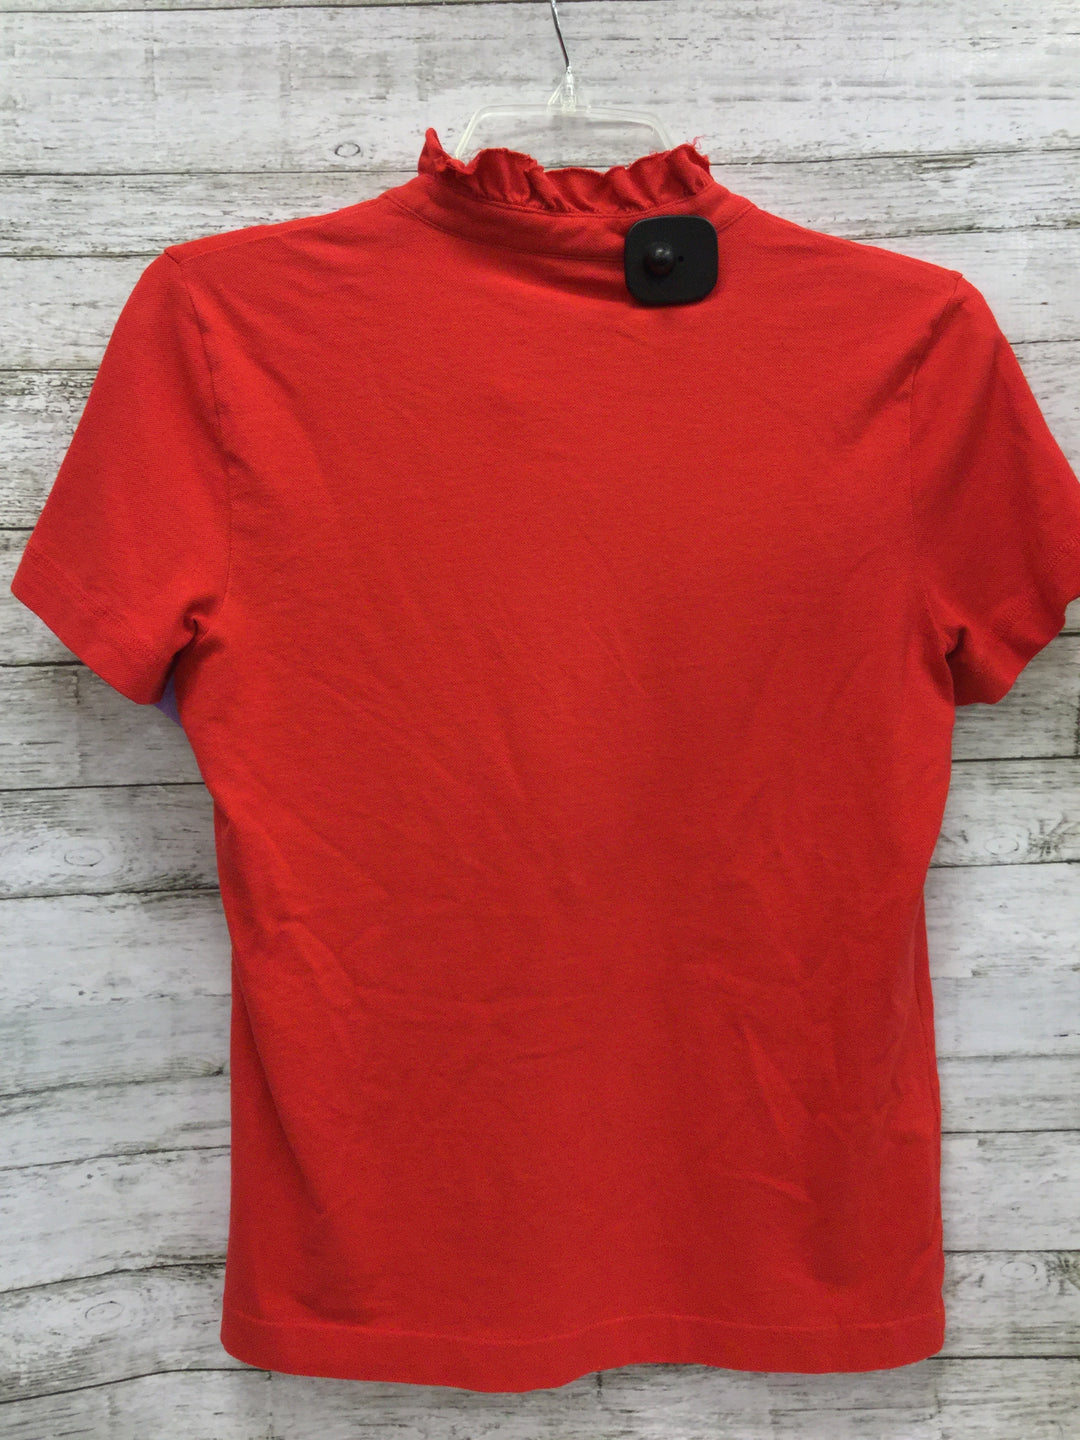 Photo #2 - BRAND: TORY BURCH , STYLE: TOP SHORT SLEEVE , COLOR: RED , SIZE: M , OTHER INFO: AS IS , SKU: 127-4876-8145, , THE COLLAR OF THIS TOP IN GENTLY USED. OTHERWISE THIS TOP IS IN GREAT CONDITION.